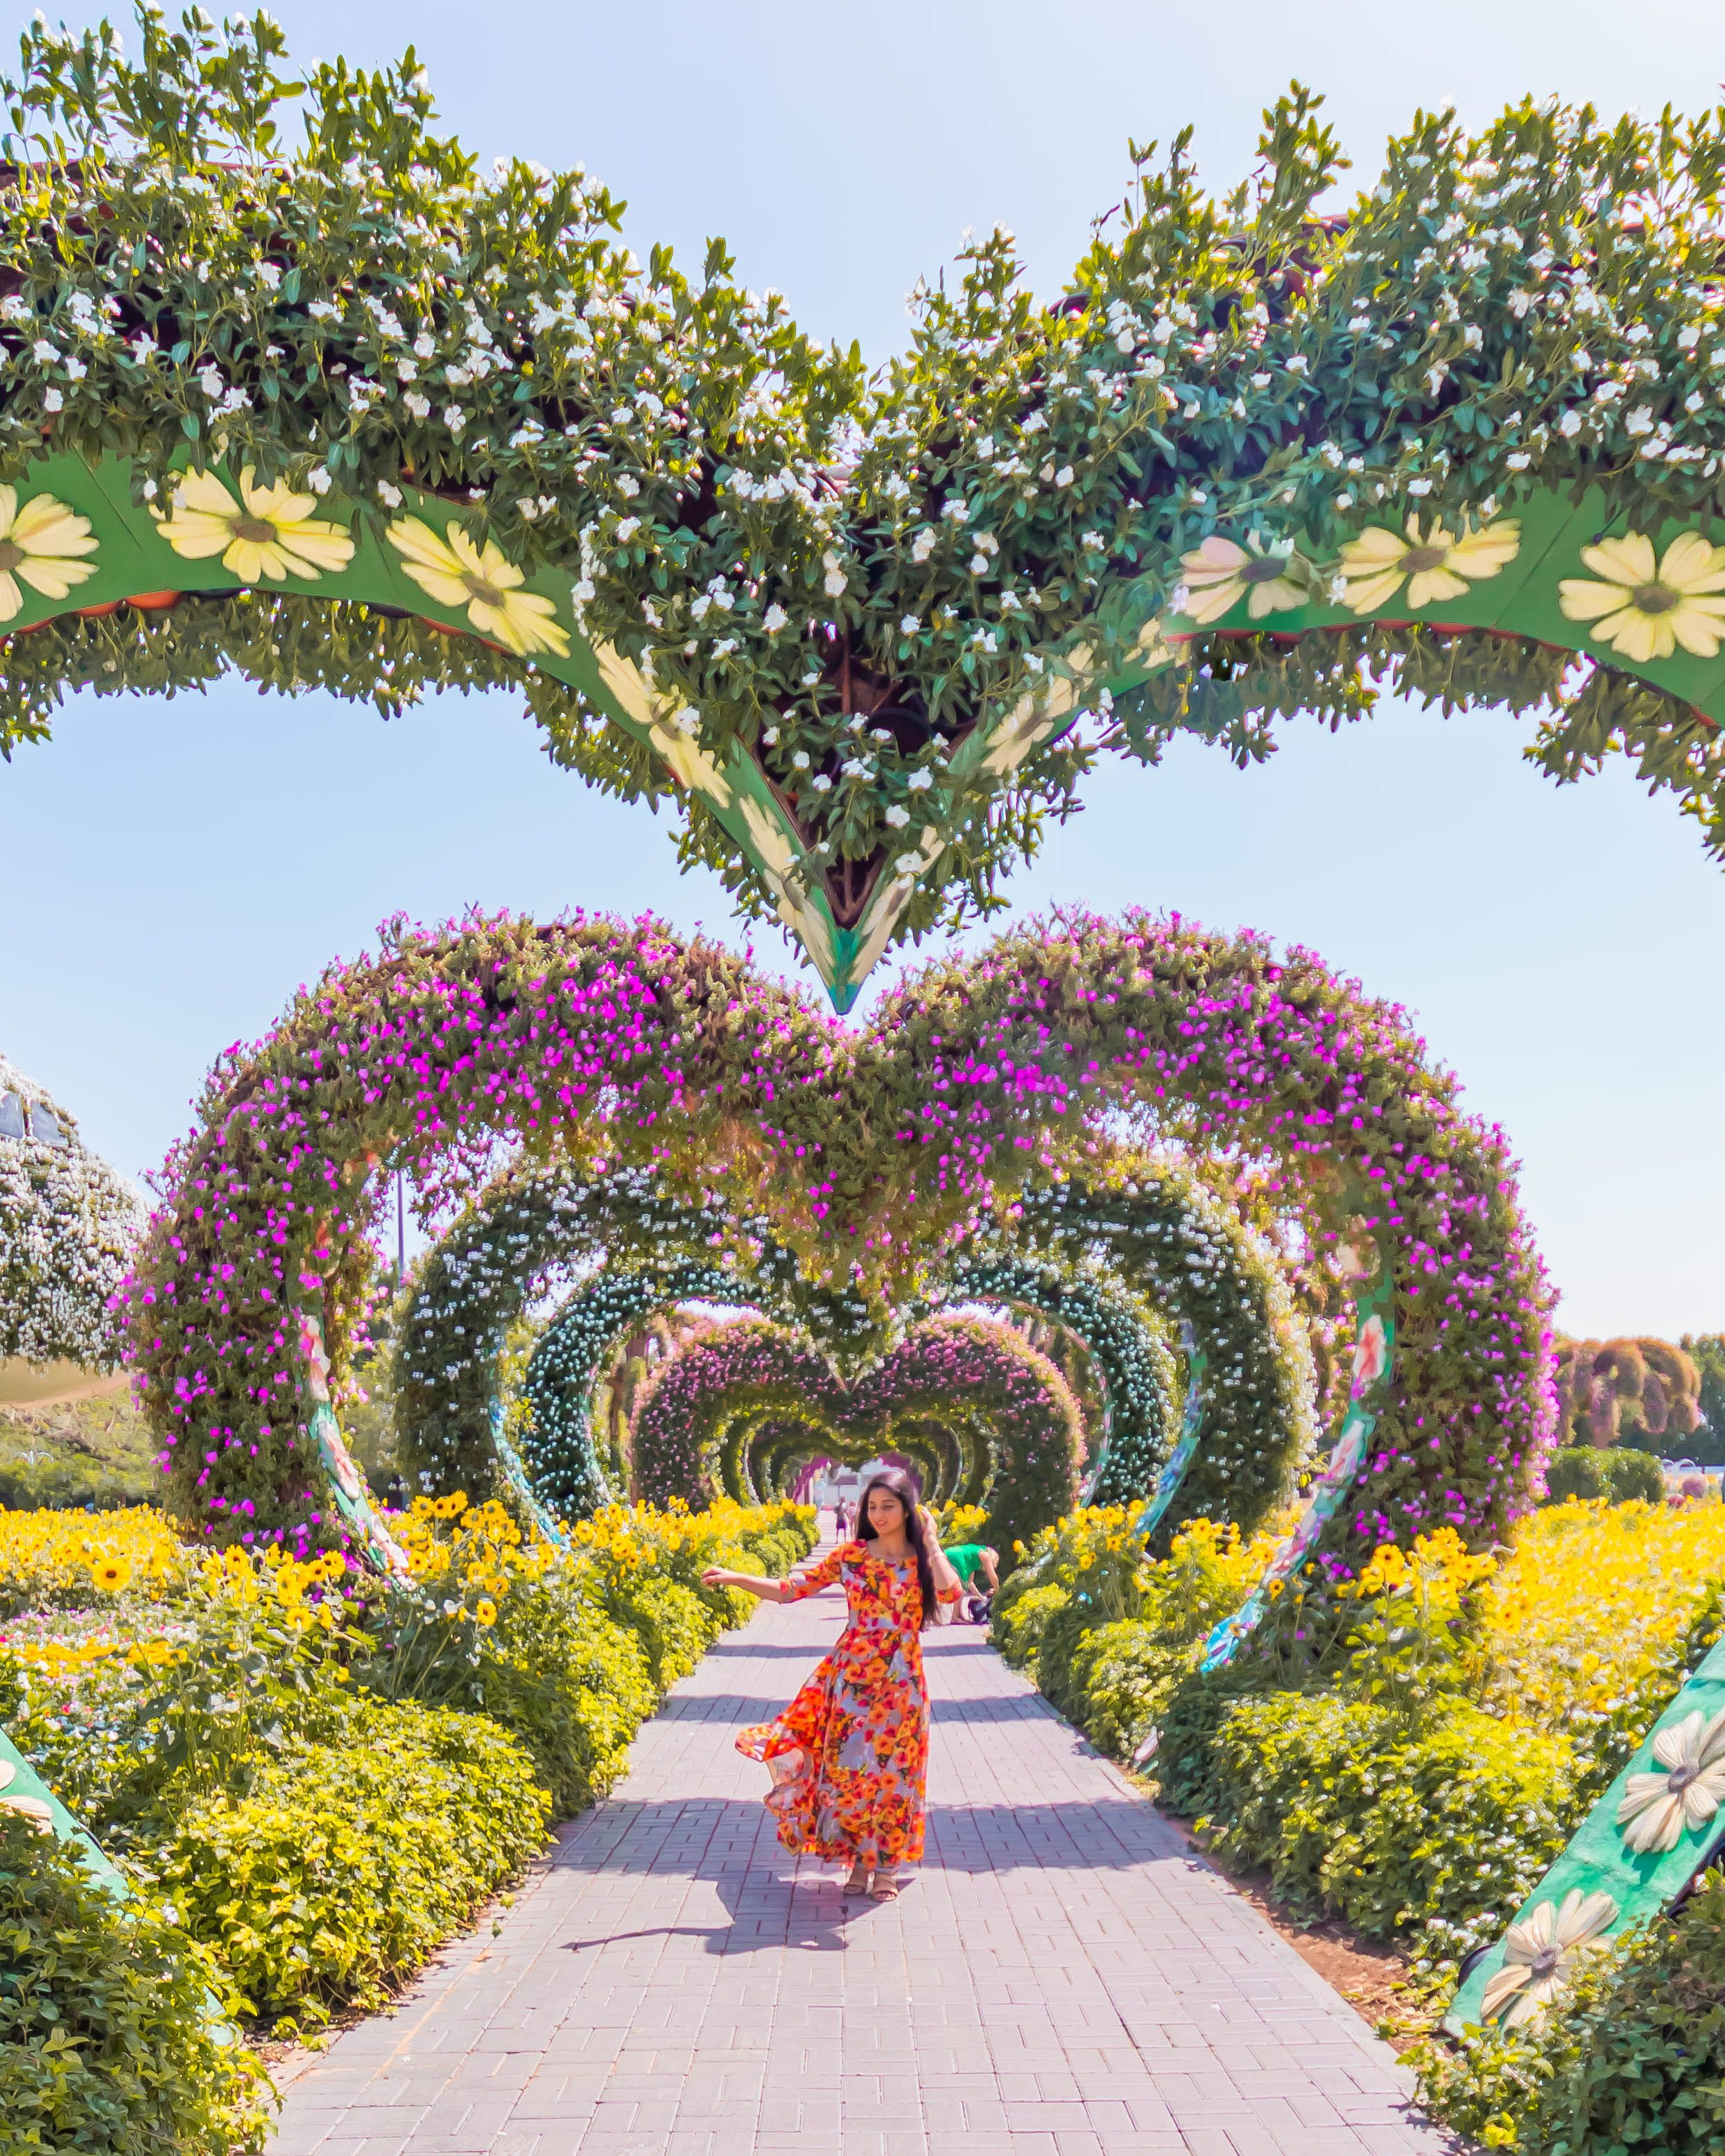 Dancing with joy in the worlds biggest flower land